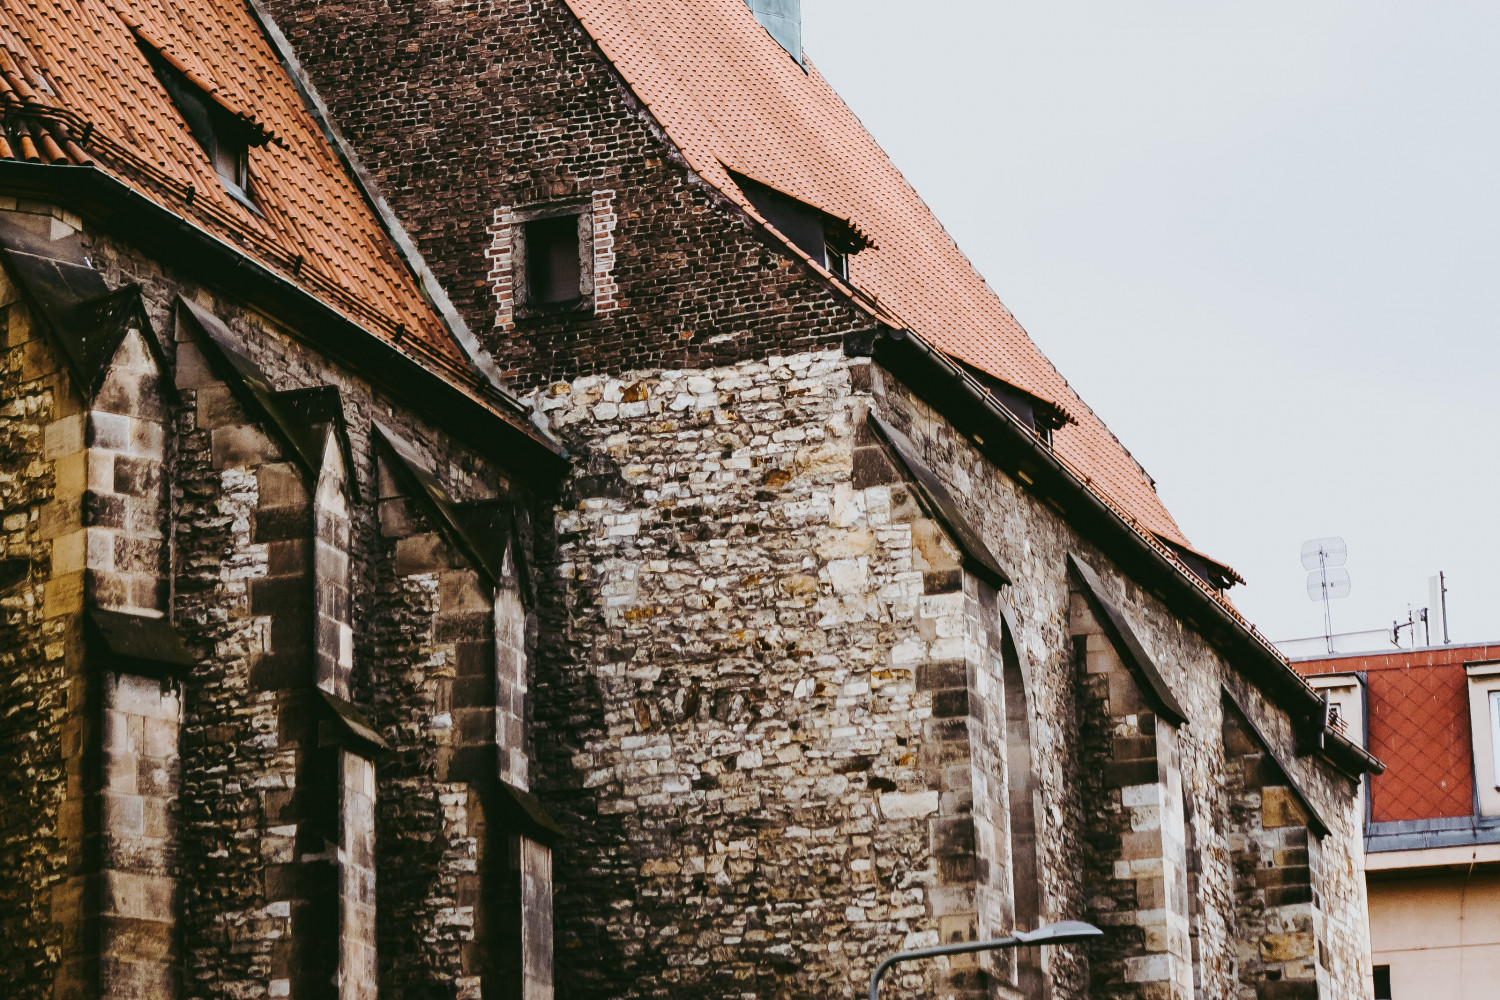 Image of an old red brick church